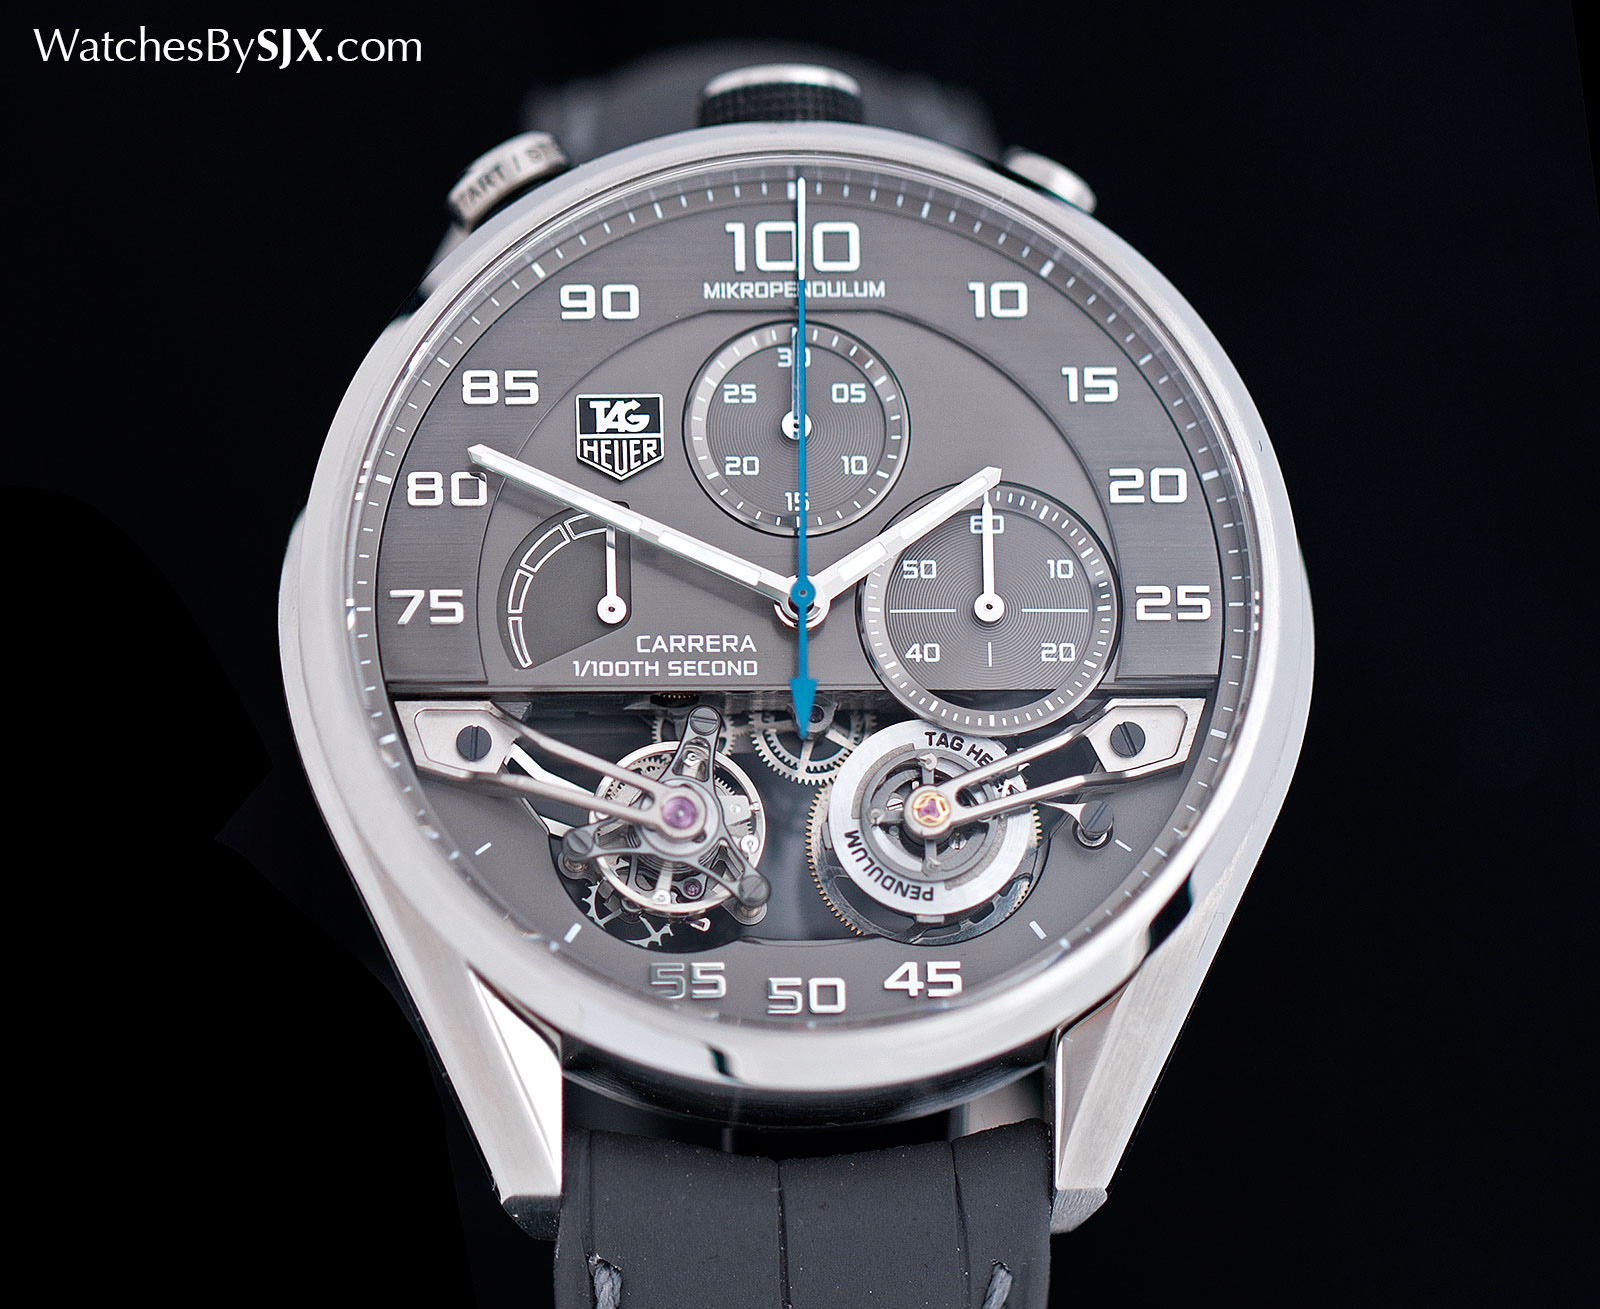 Tag: Watches By SJX: Up Close With The $400,000 TAG Heuer That